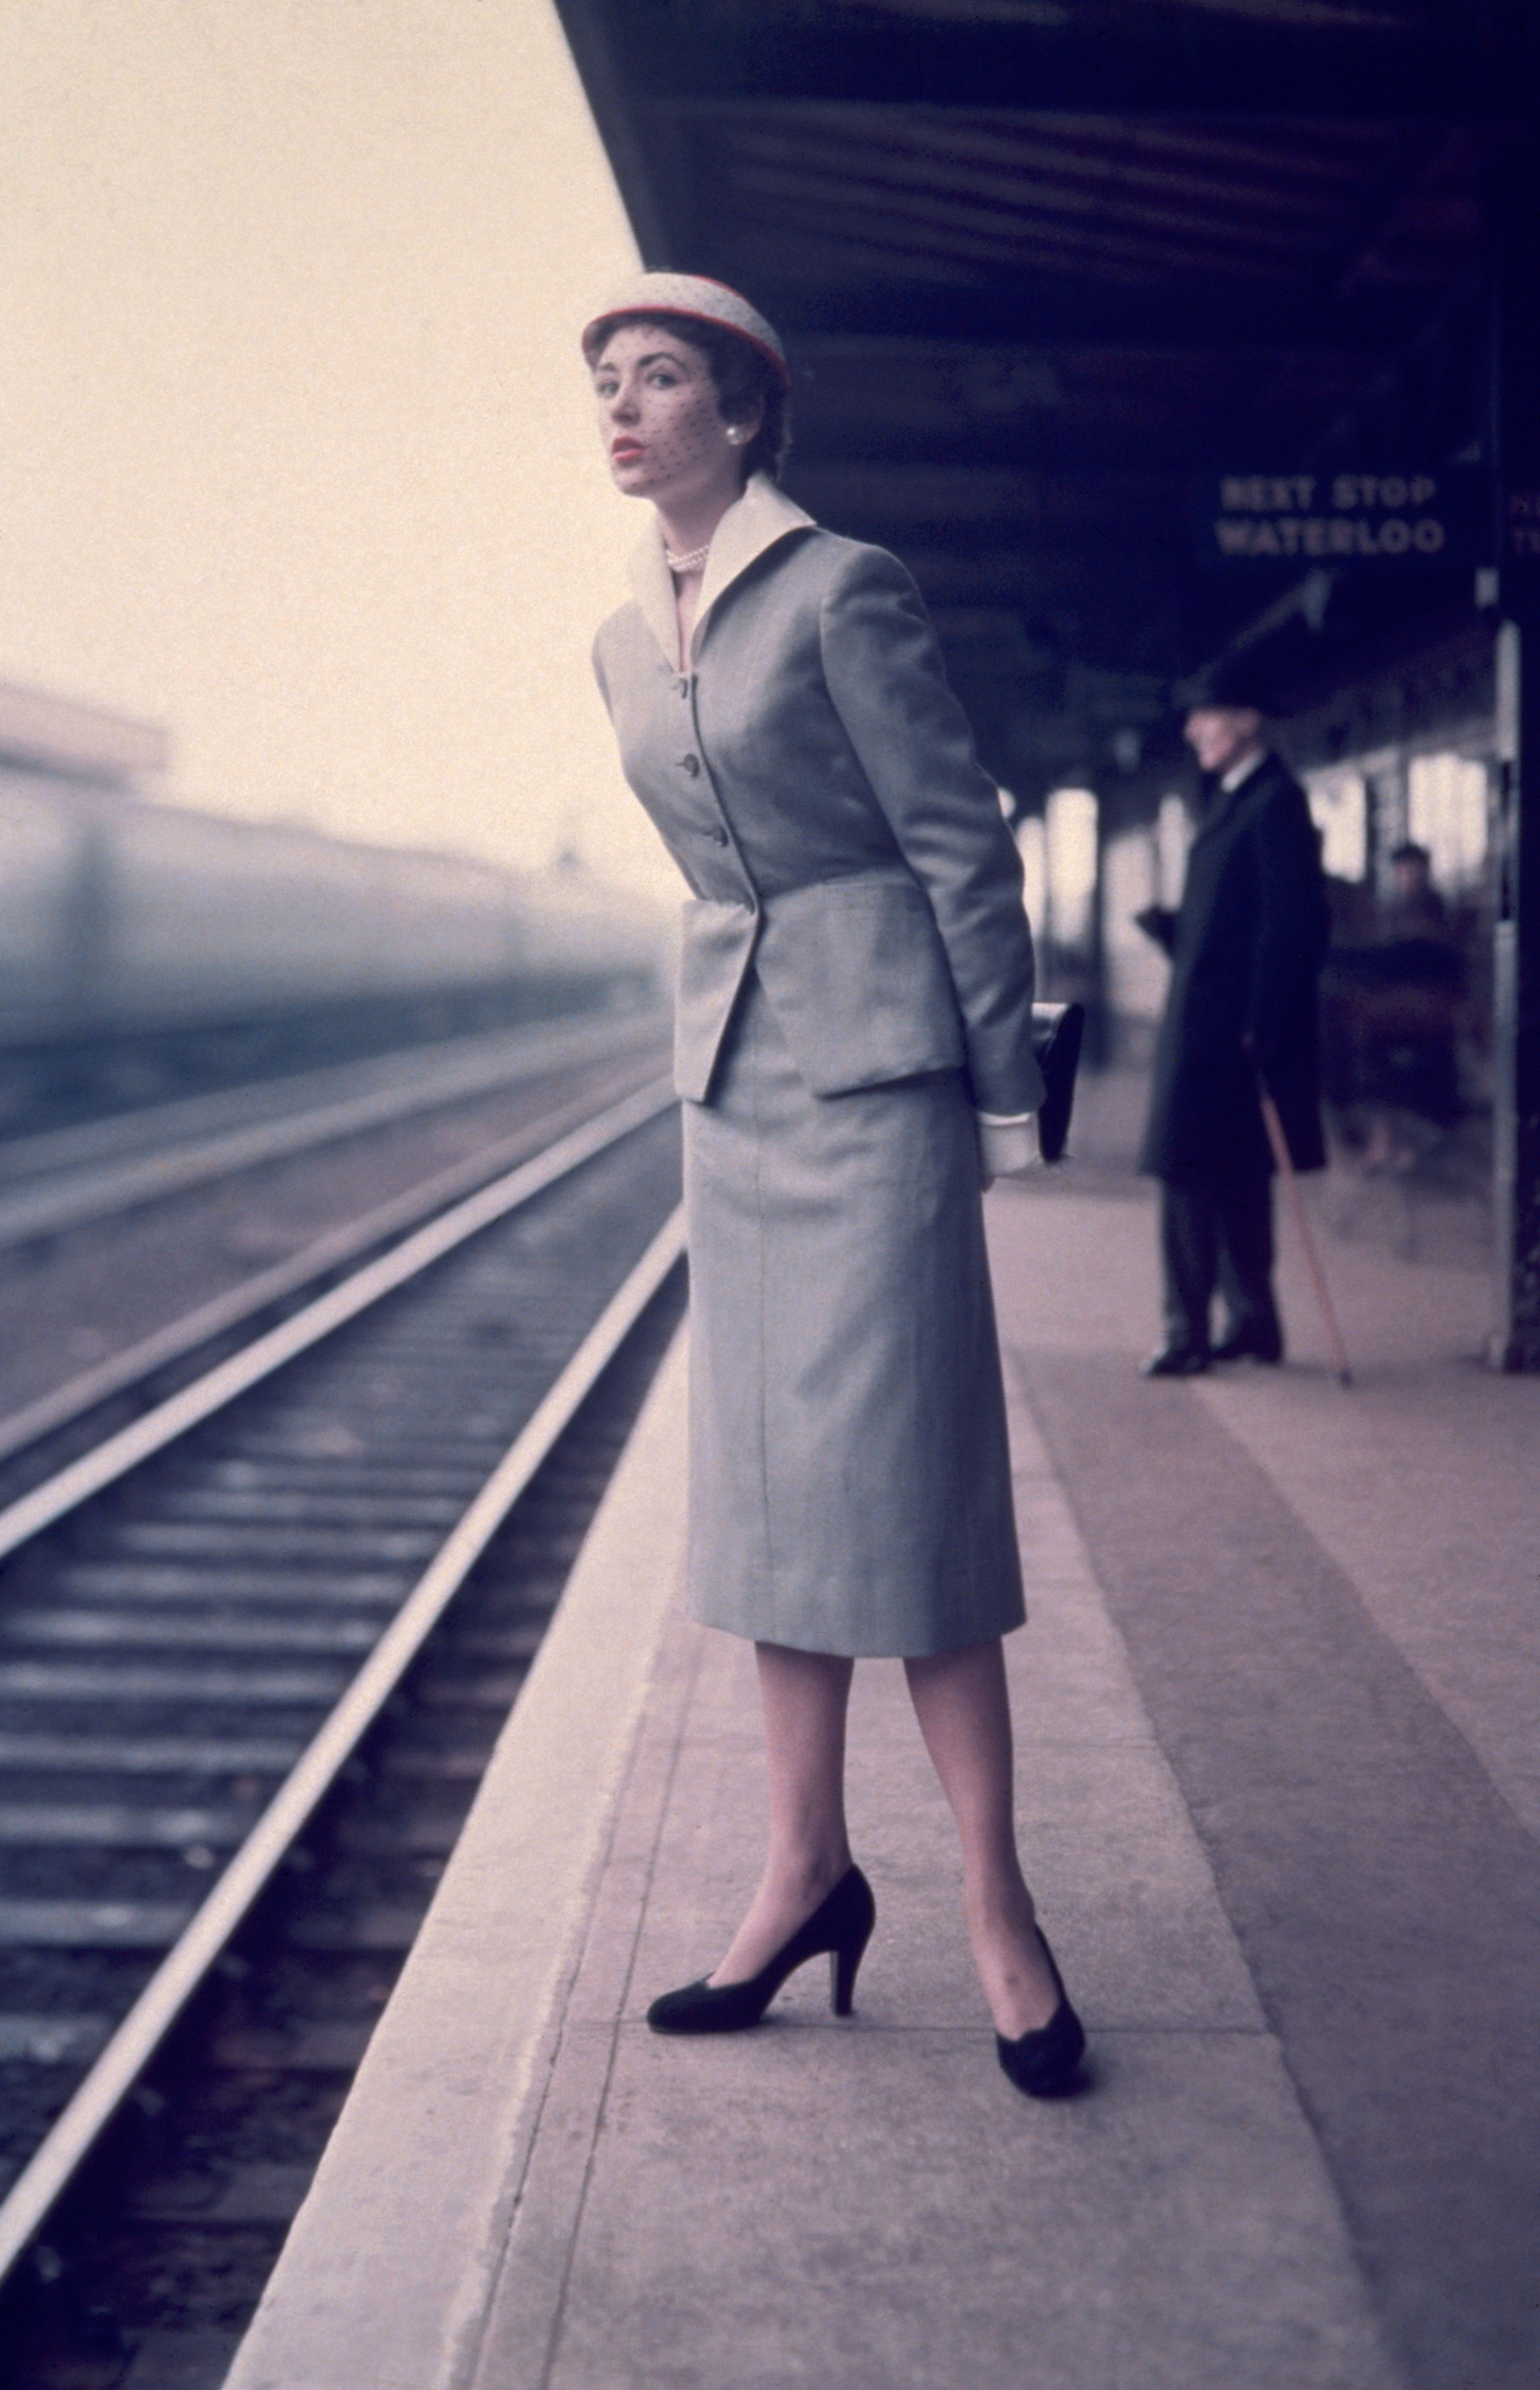 A woman stands on a station platform, watching for her train.